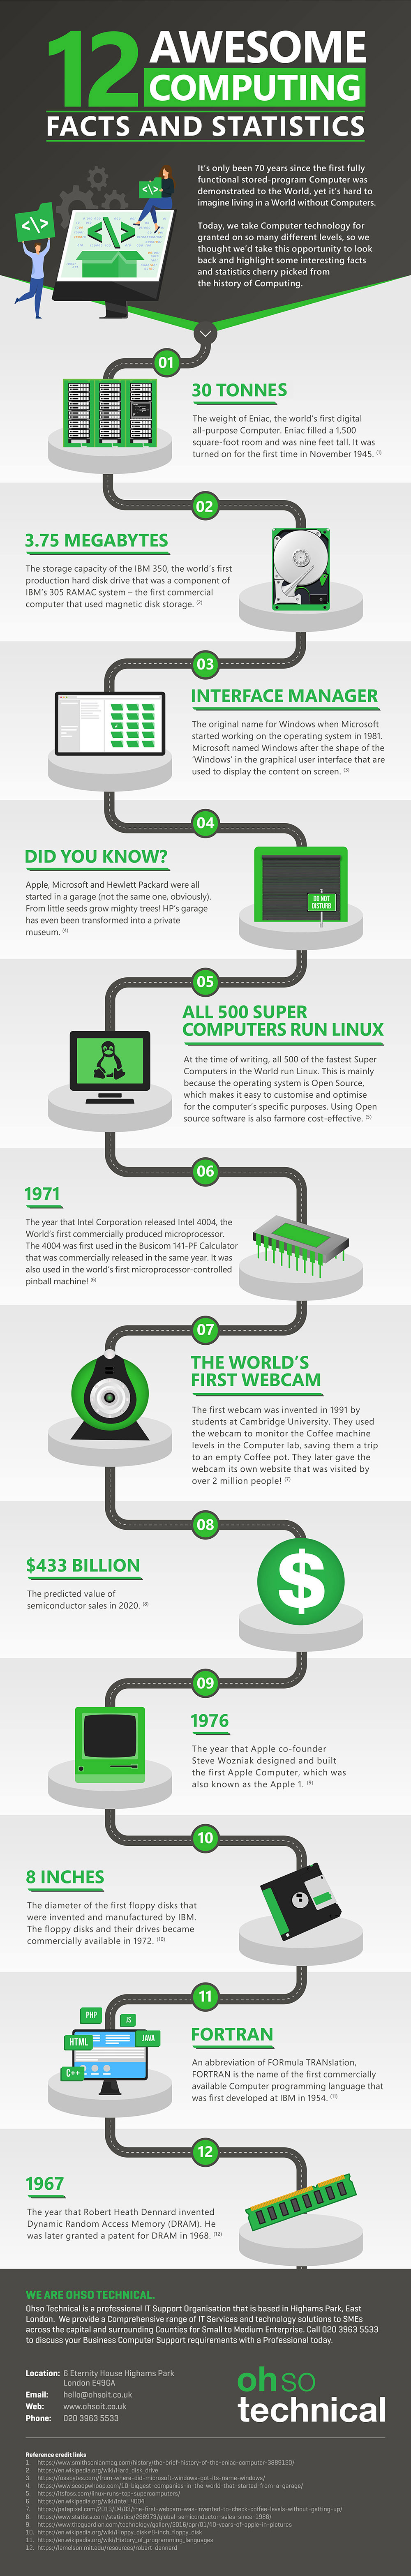 Computing Facts infographic